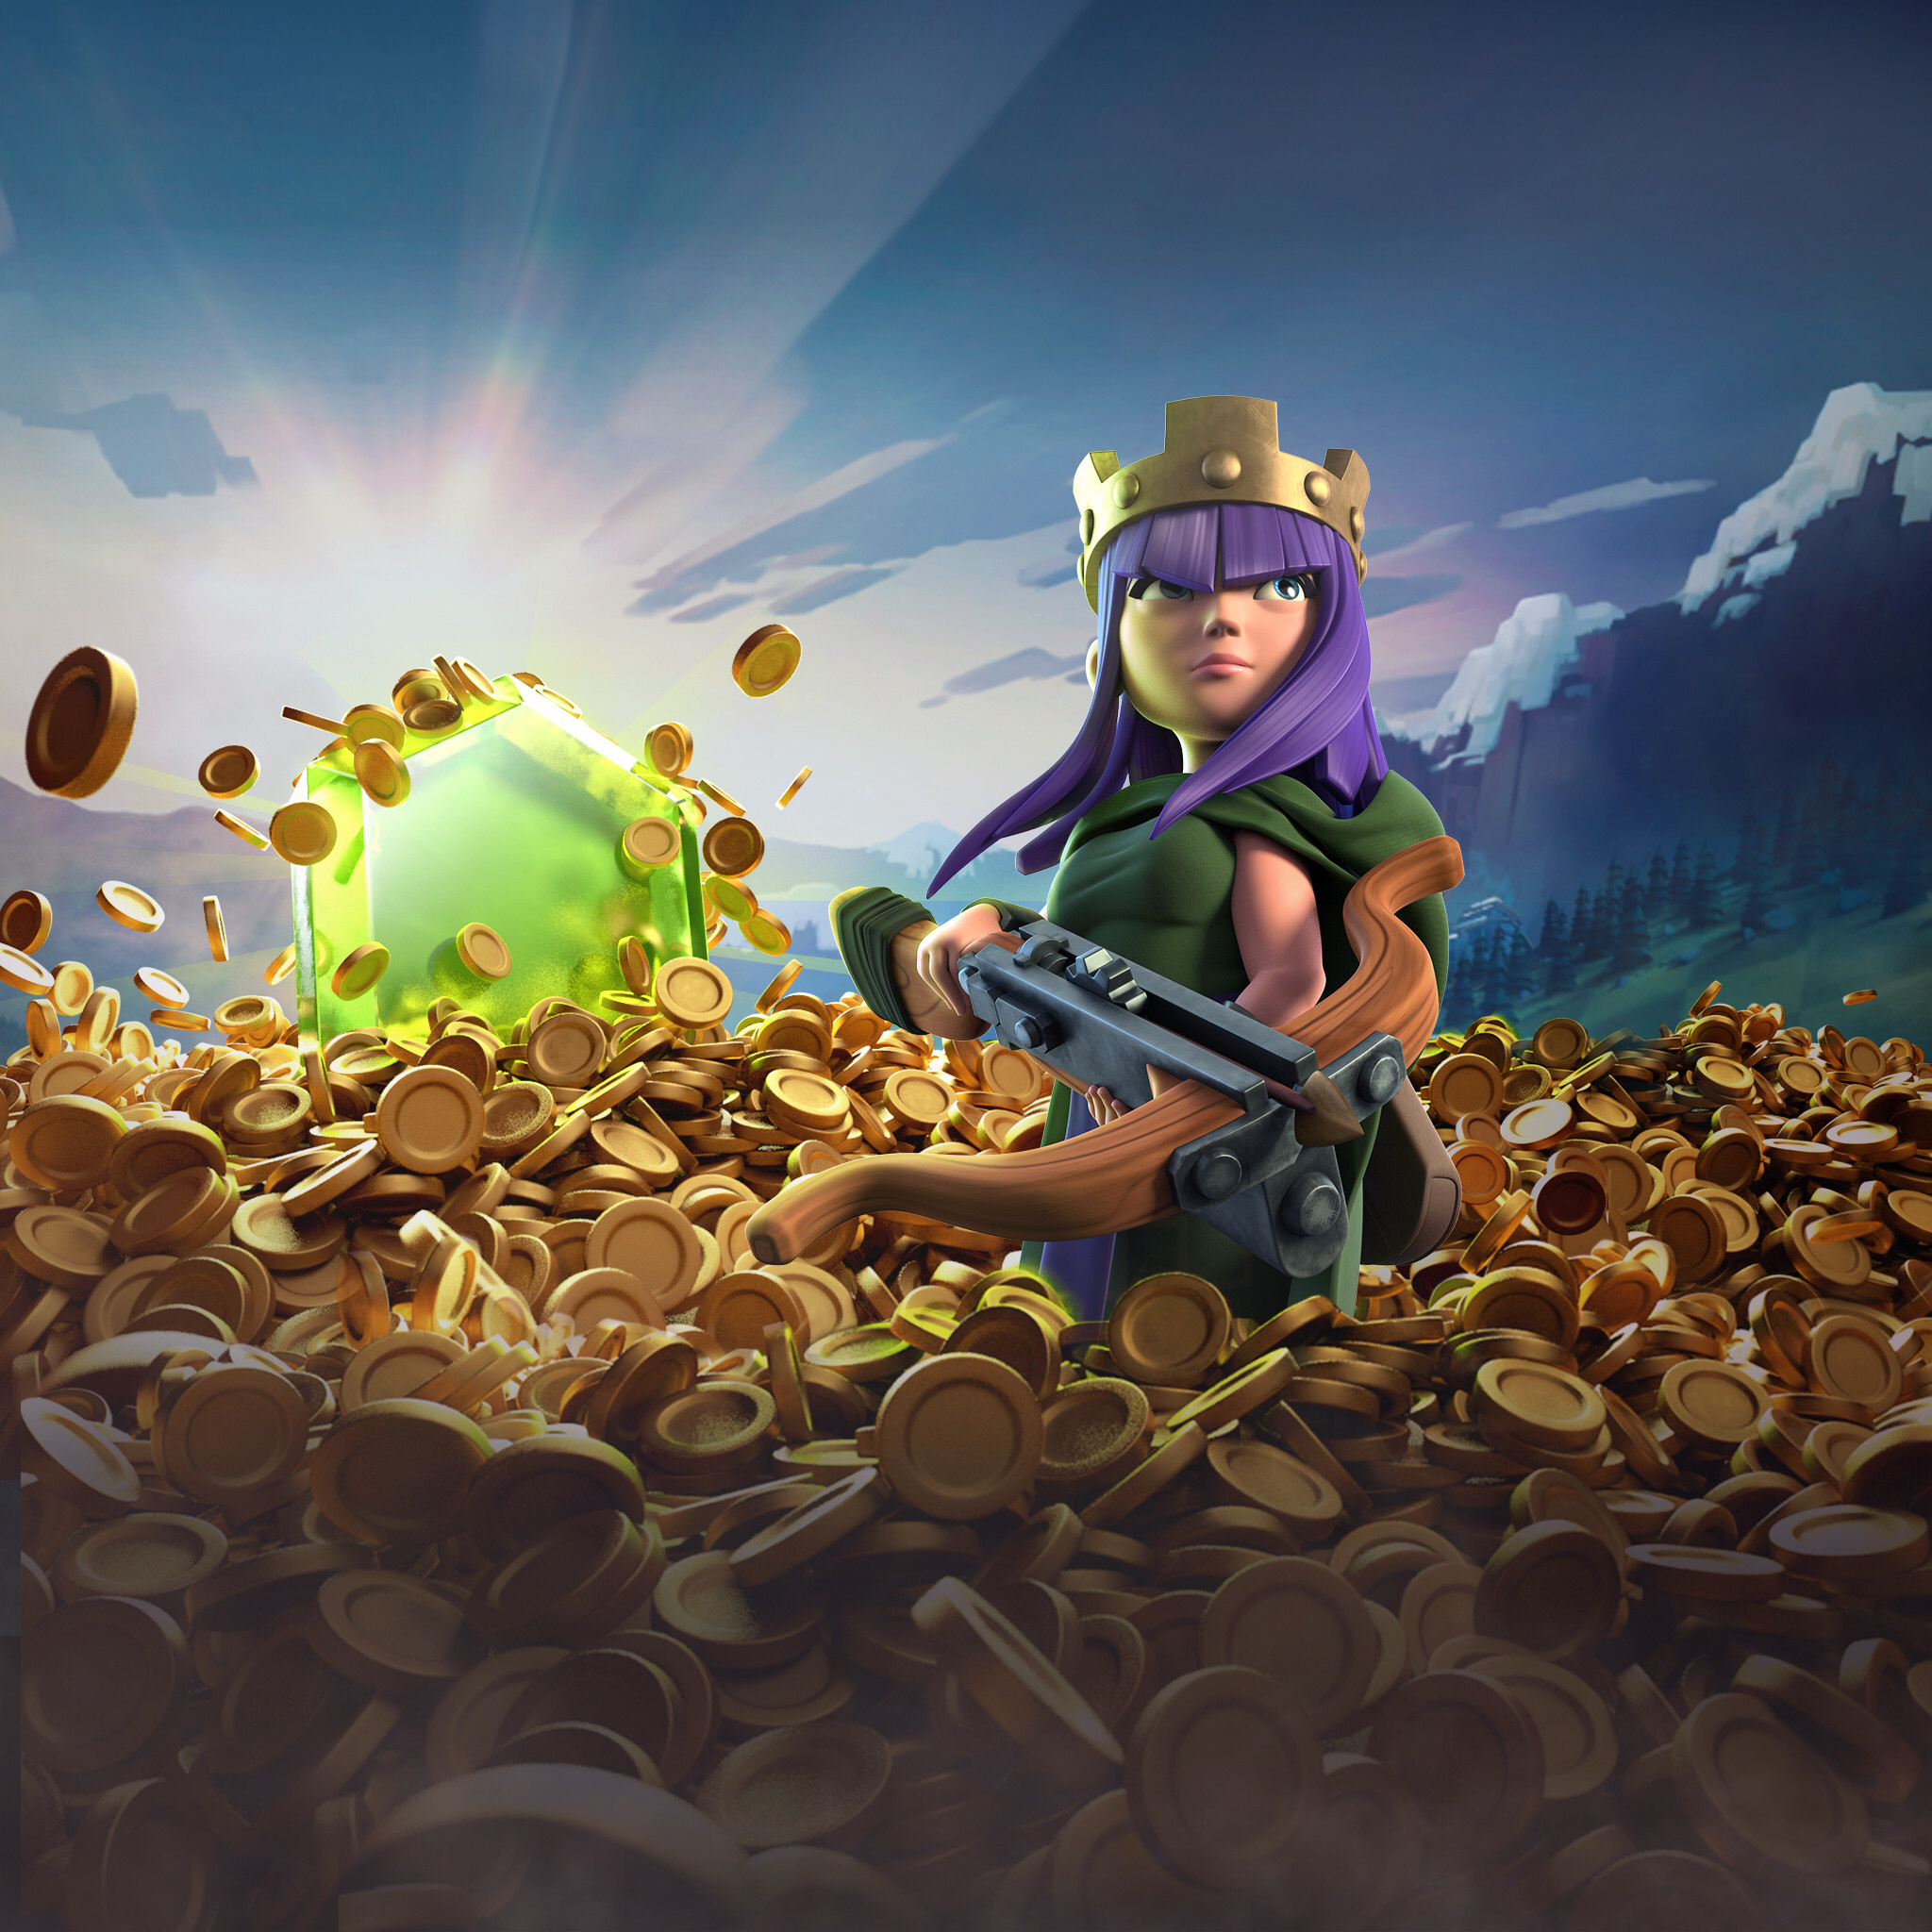 Cool 3d Wallpapers For Walls Archer Queen Clash Of Clans Hd Games 4k Wallpapers